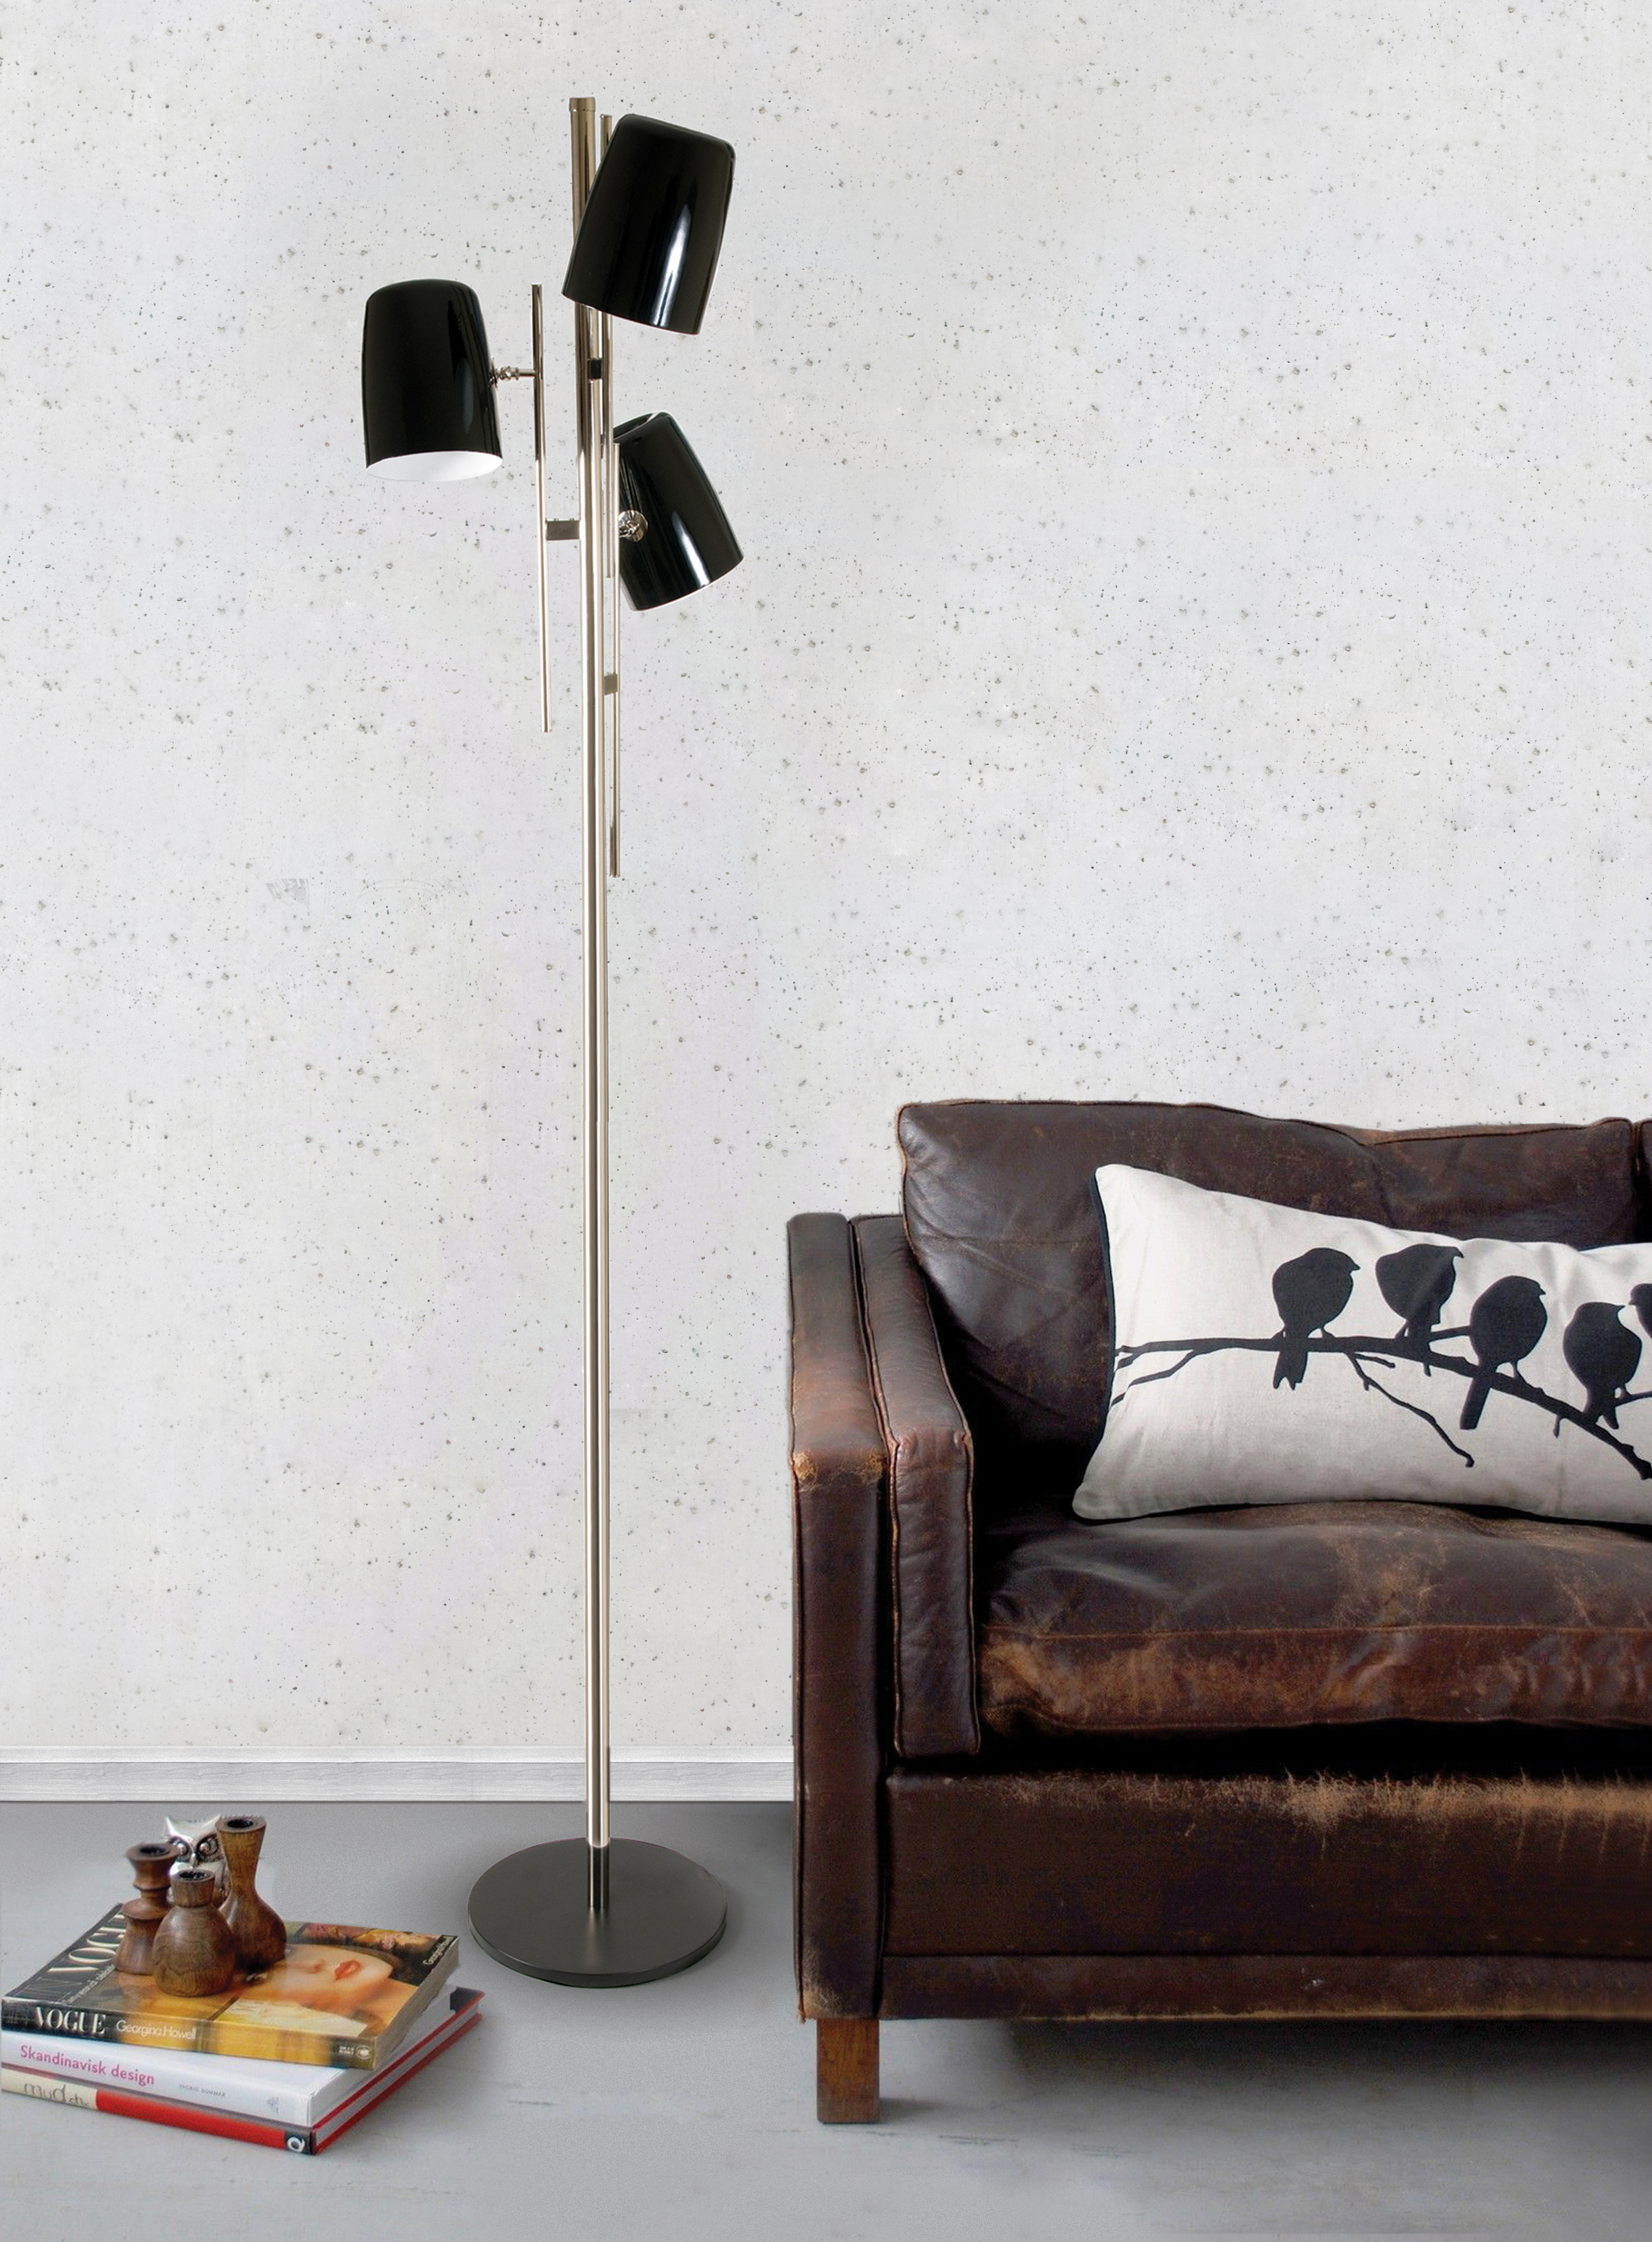 5 Retro Floor Lamps To Make Your Home As Glamourous As You! 7 retro floor lamps 5 Retro Floor Lamps To Make Your Home As Glamourous As You! 5 Retro Floor Lamps To Make Your Home As Glamourous As You 7